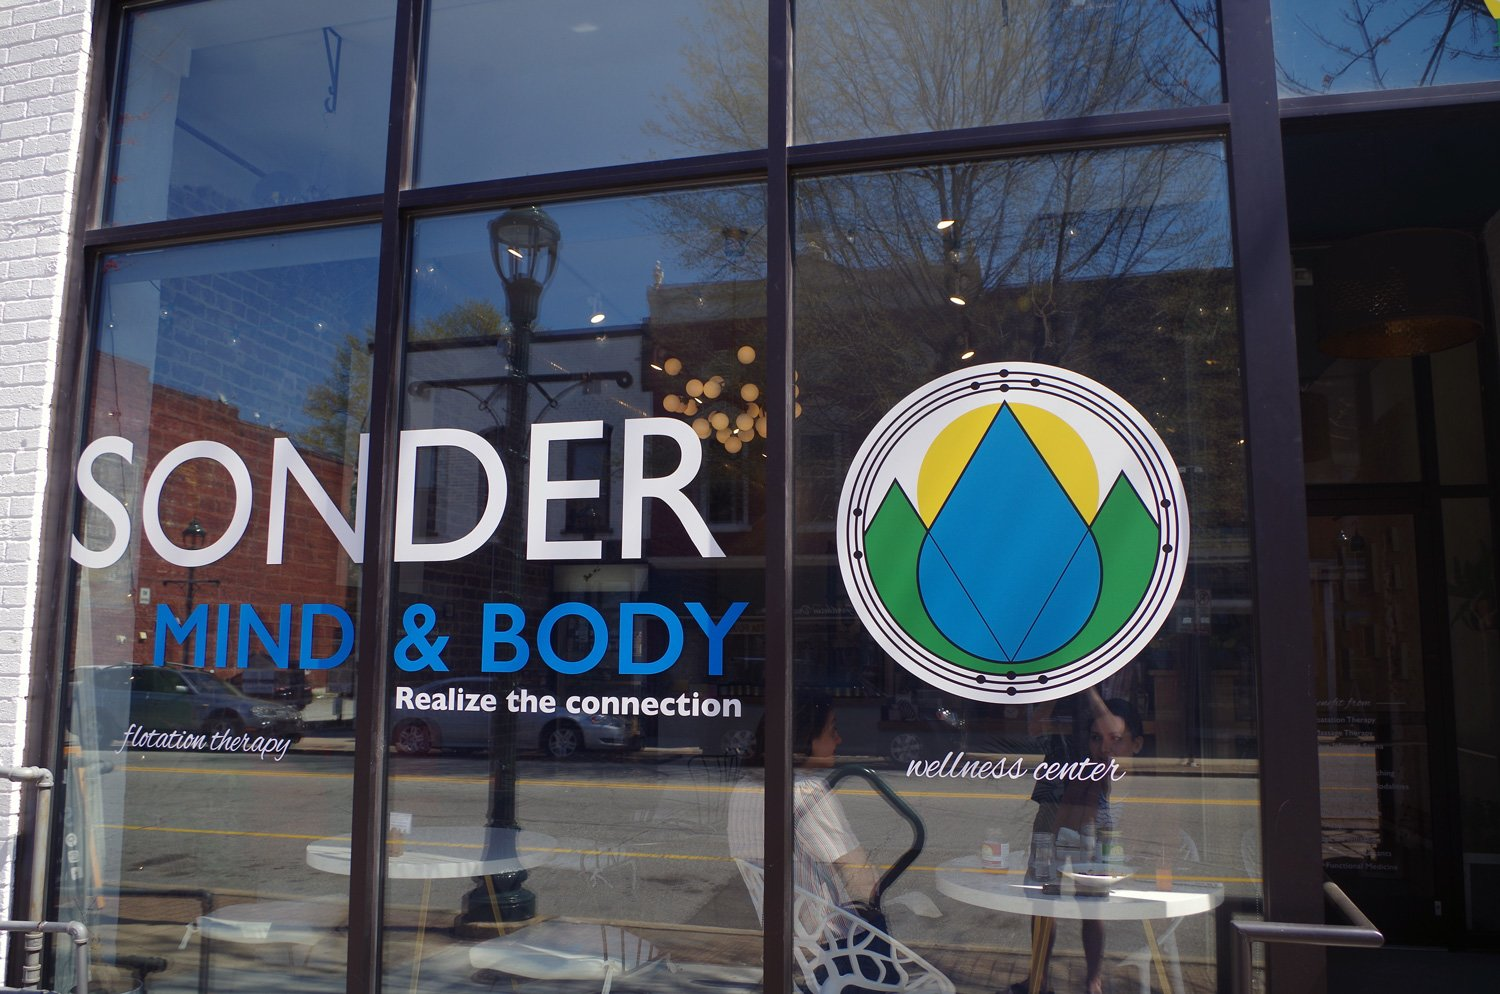 In addition to floatation therapy, Sonder Mind & Body in downtown Greensboro offers massage therapy, yoga and meditation sessions.